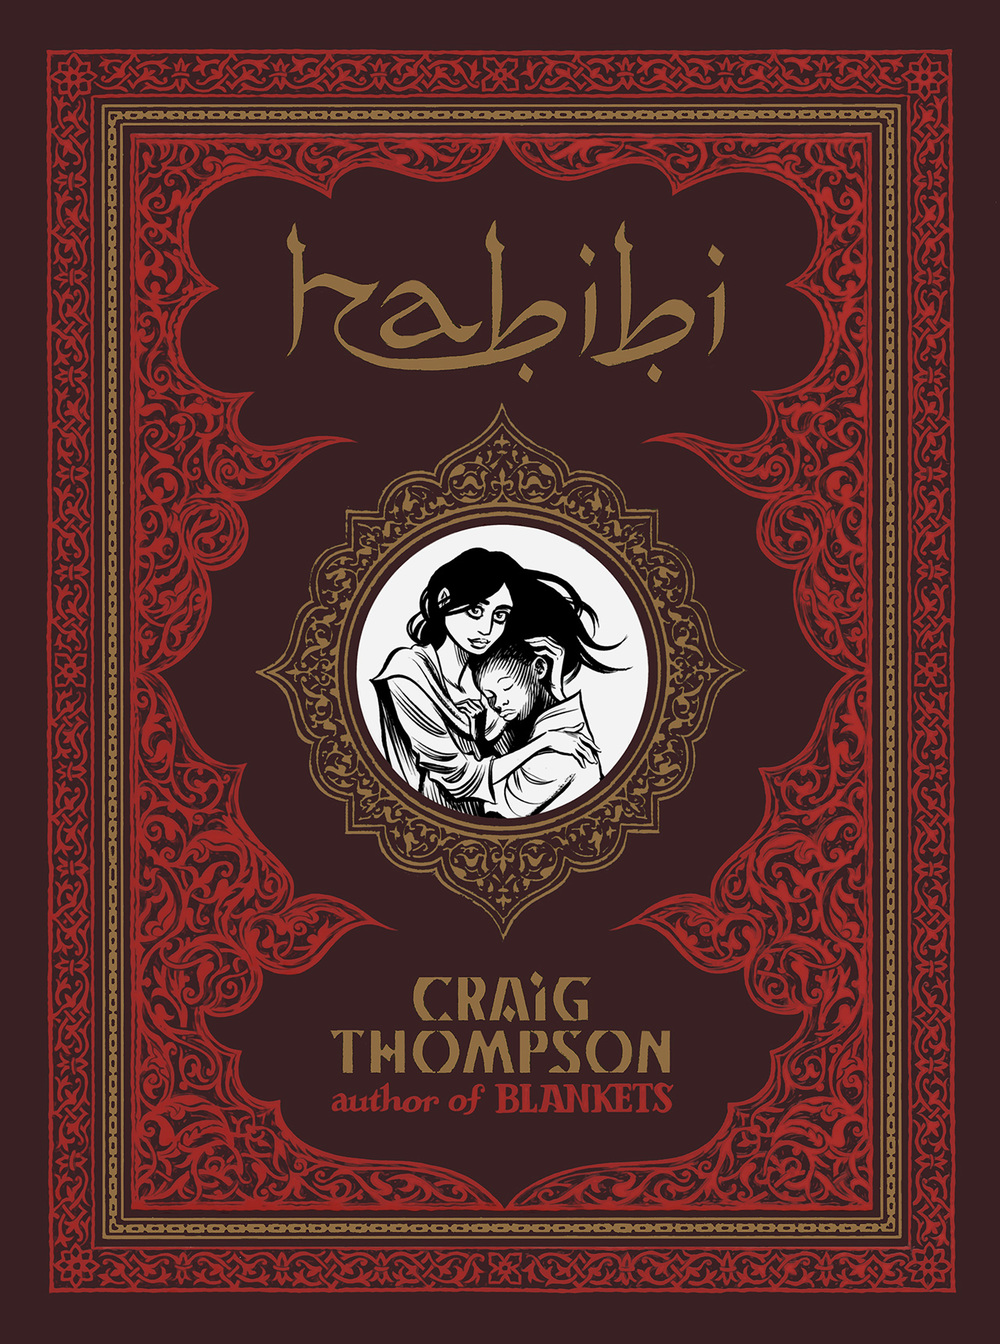 Habibi  was published in September of 2011.